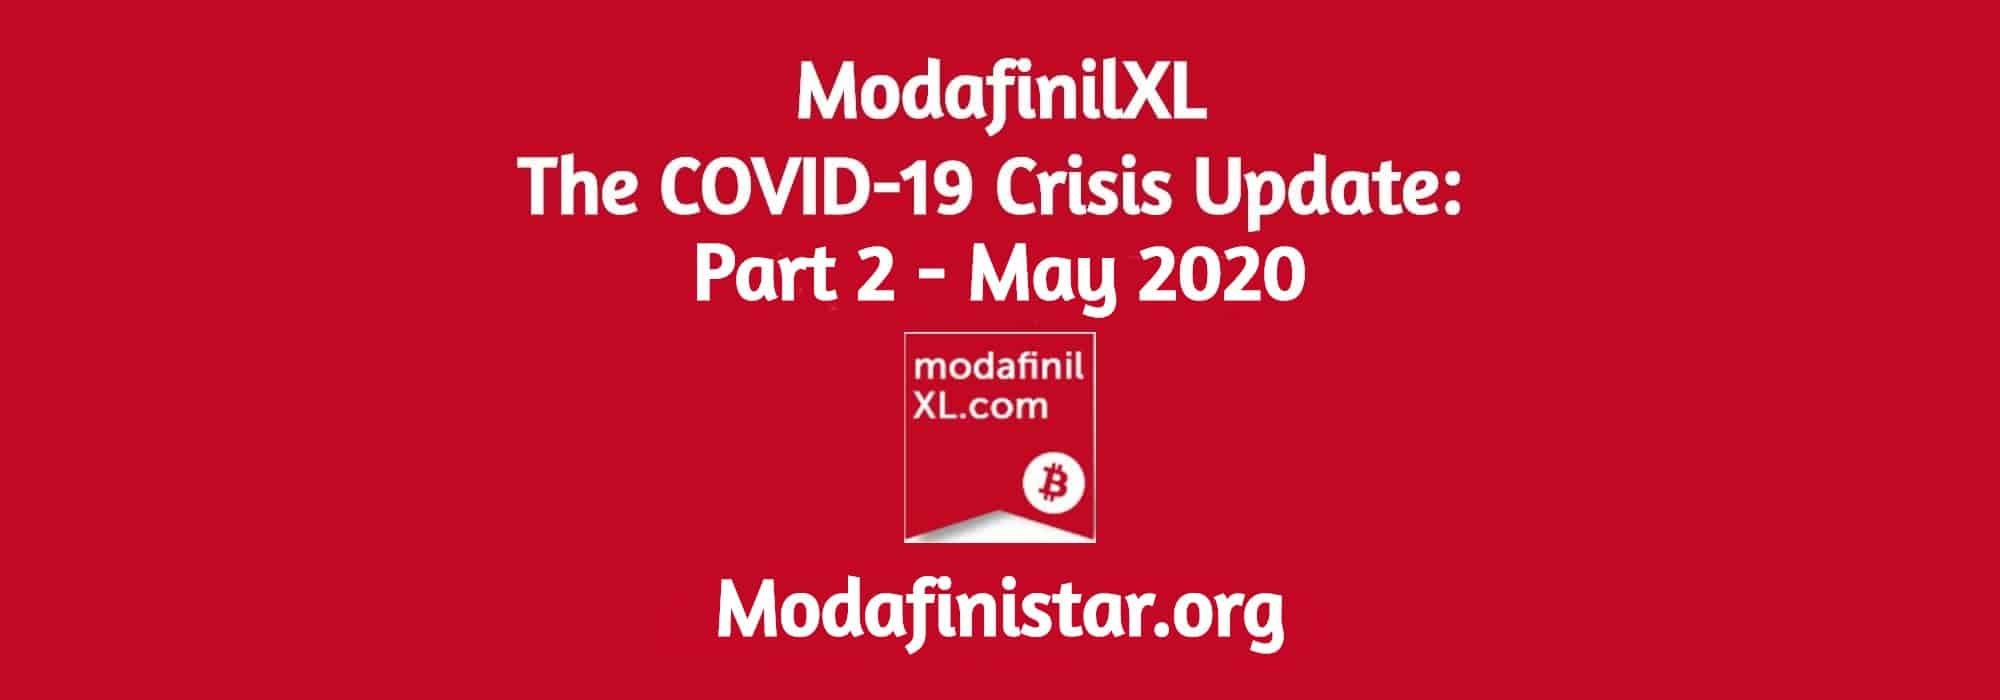 The-COVID-19-Crisis-Update_-Part-2 modafinilstar